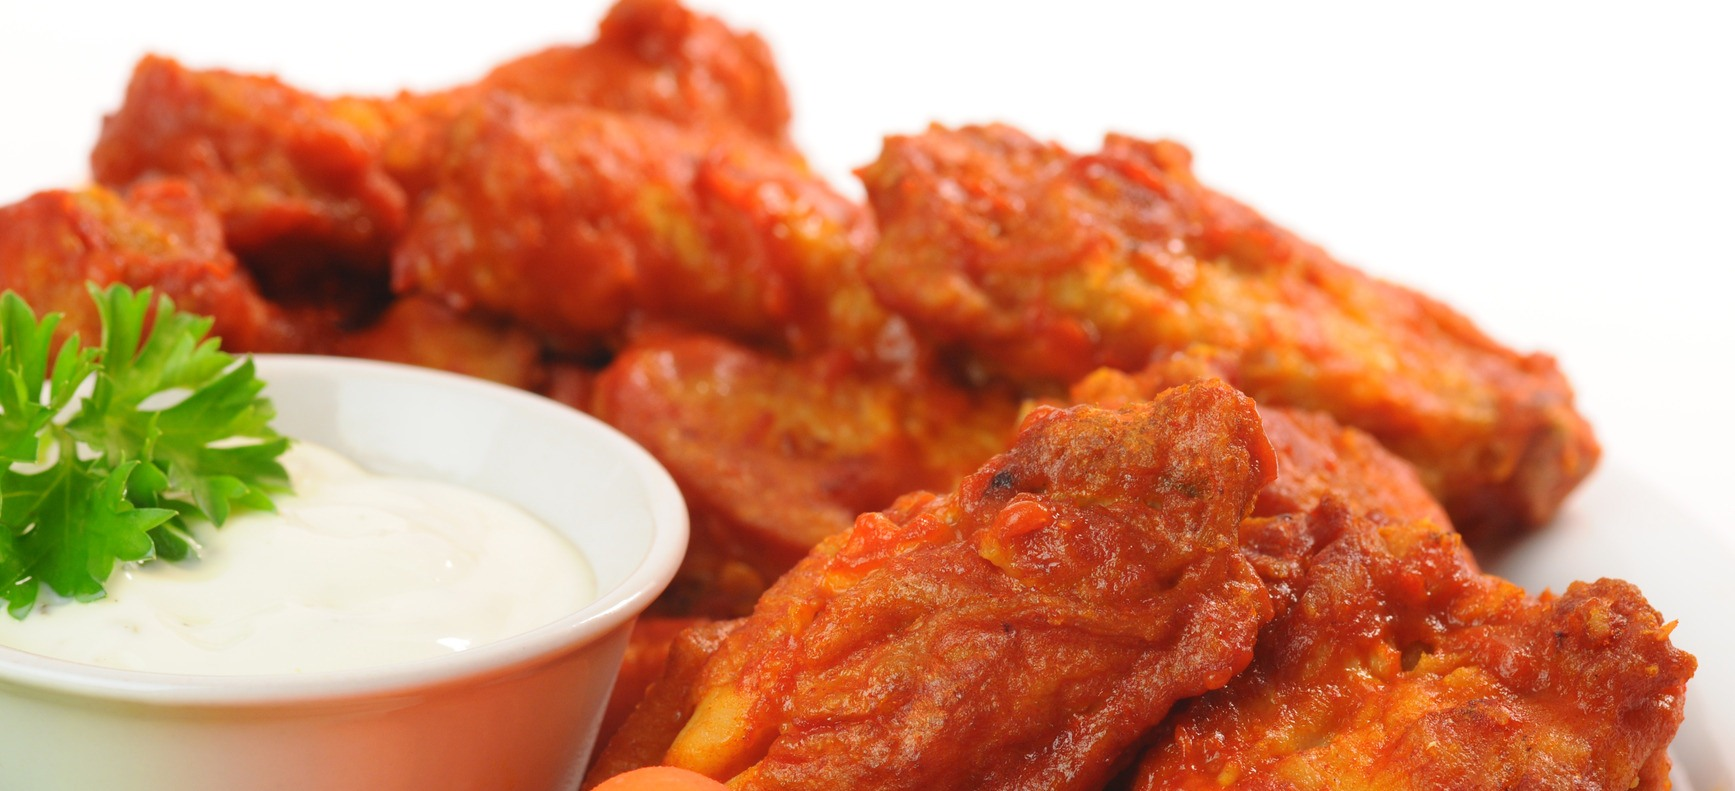 Chicken Wings And Beer | galleryhip.com - The Hippest Pics